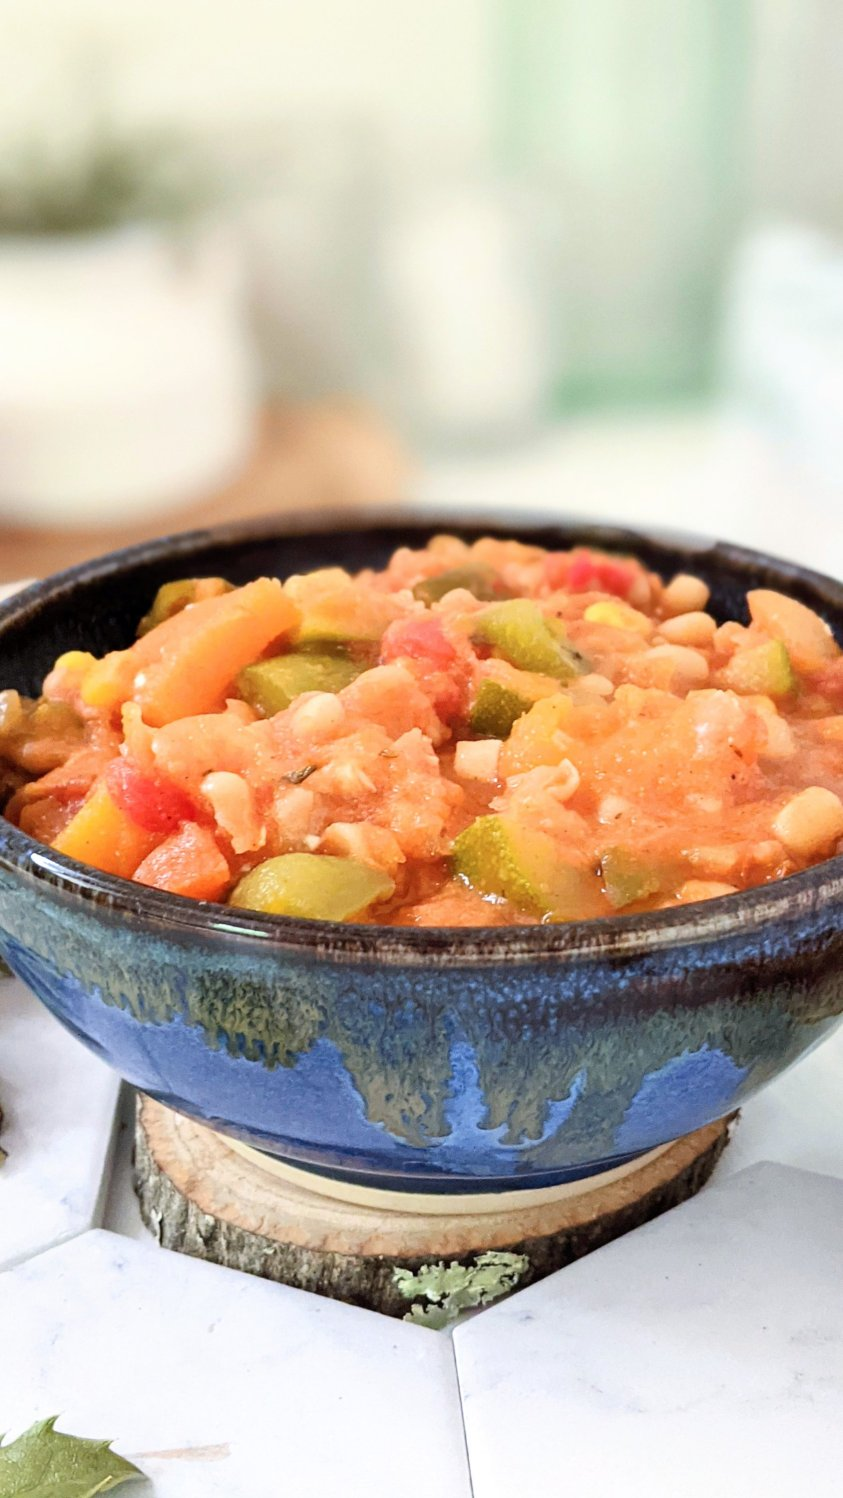 vegan summer squash stew recipe with corn and beans dinner recipes plant based three sisters stew recipe for summer gardens in northeast or midwest recipes for summer produce